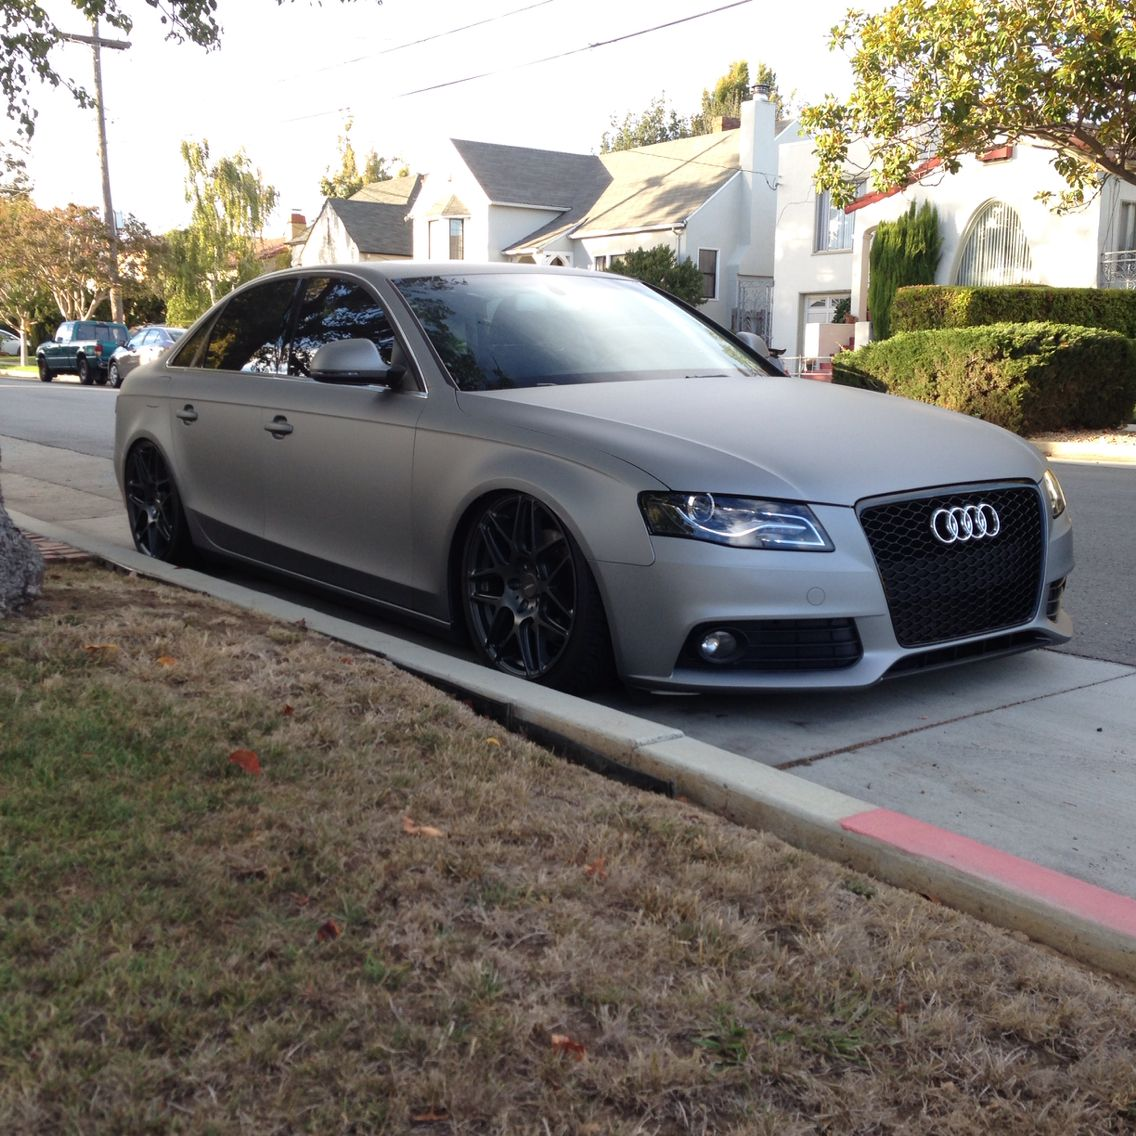 Too many white audis with black rims